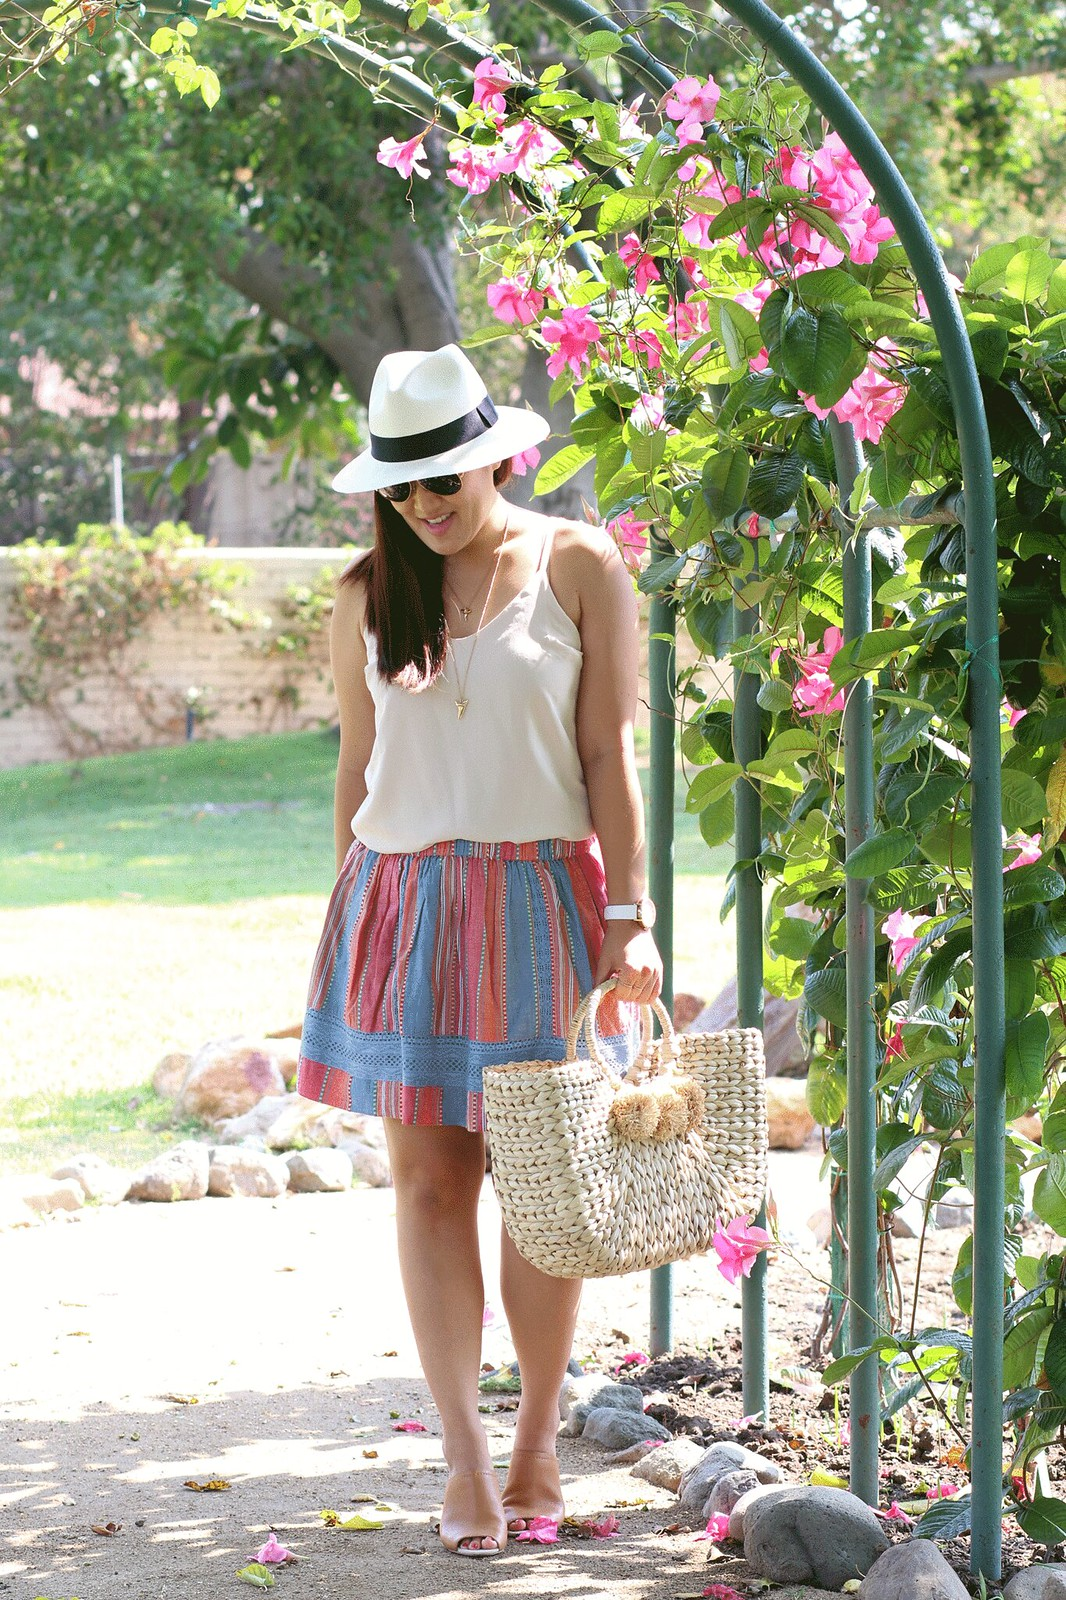 simplyxclassic, hat attack tote, shop bop, revolve, dra skirt, orange county, fashion blogger